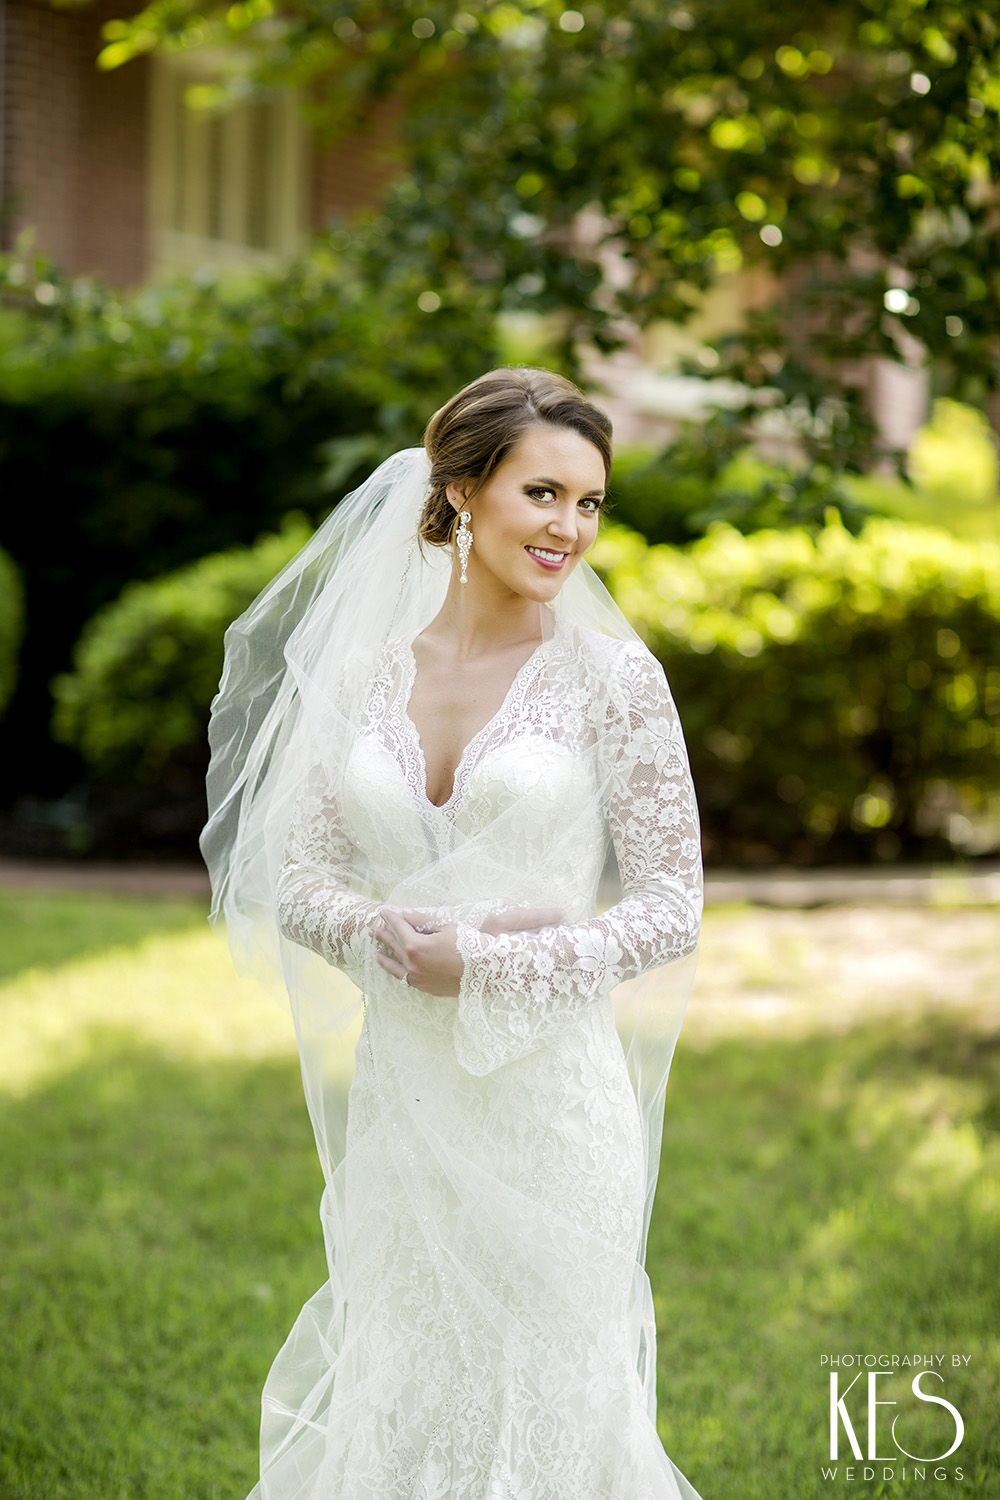 Andria_Bridals_Jonesboro_KES_Weddings_10.JPG